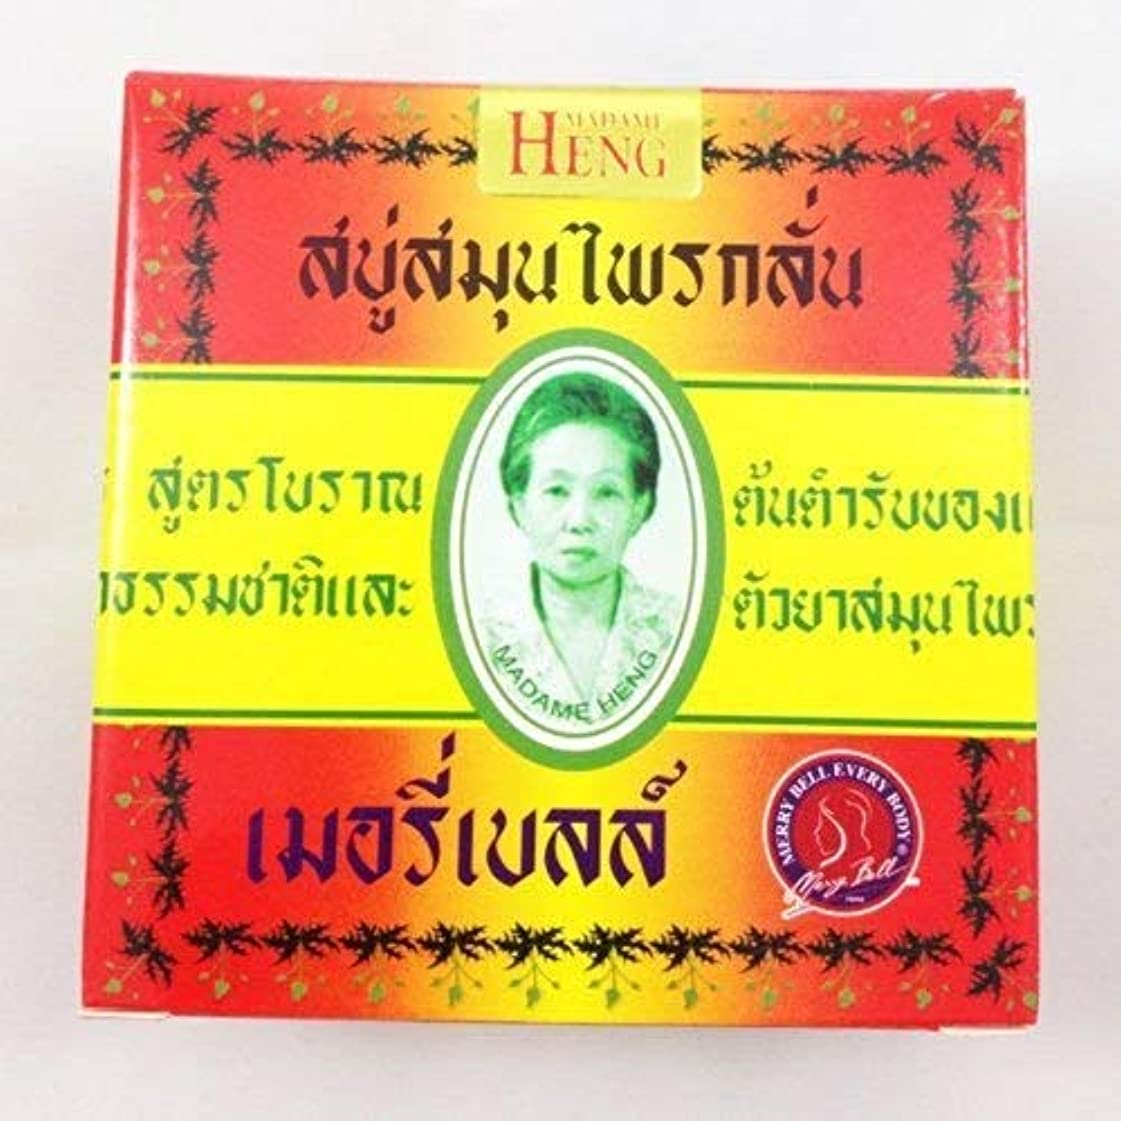 鳥コインランドリー監査Madame Heng Thai Original Natural Herbal Soap Bar Made in Thailand 160gx2pcs by Ni Yom Thai shop